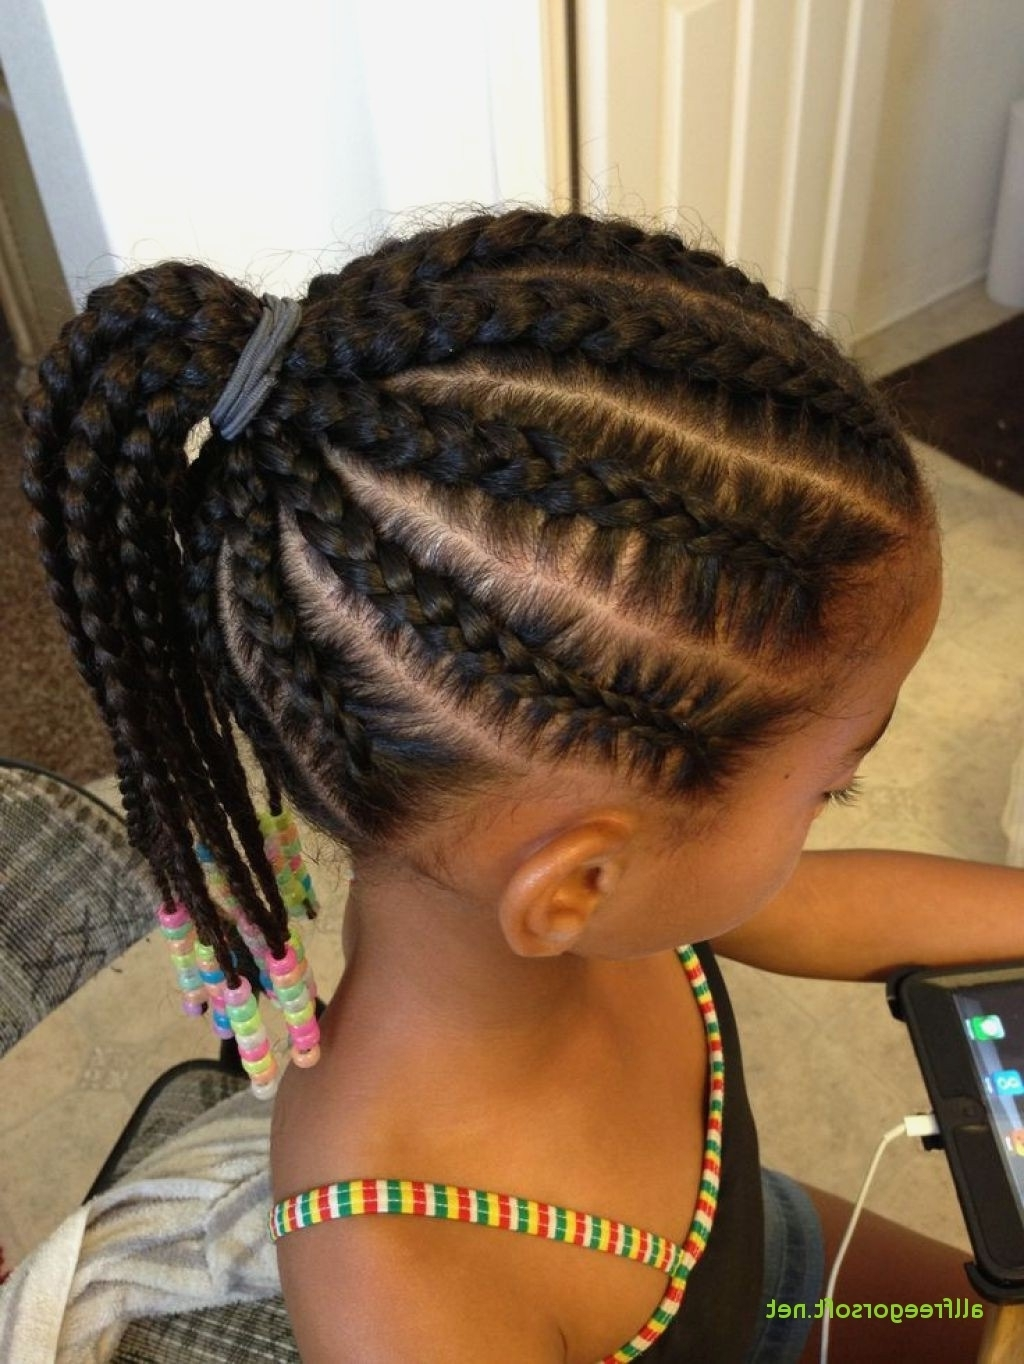 Braided Hairstyles For Little Girls Beautiful Braid Hairstyles Throughout Current Braided Hairstyles For Little Girls (View 7 of 15)